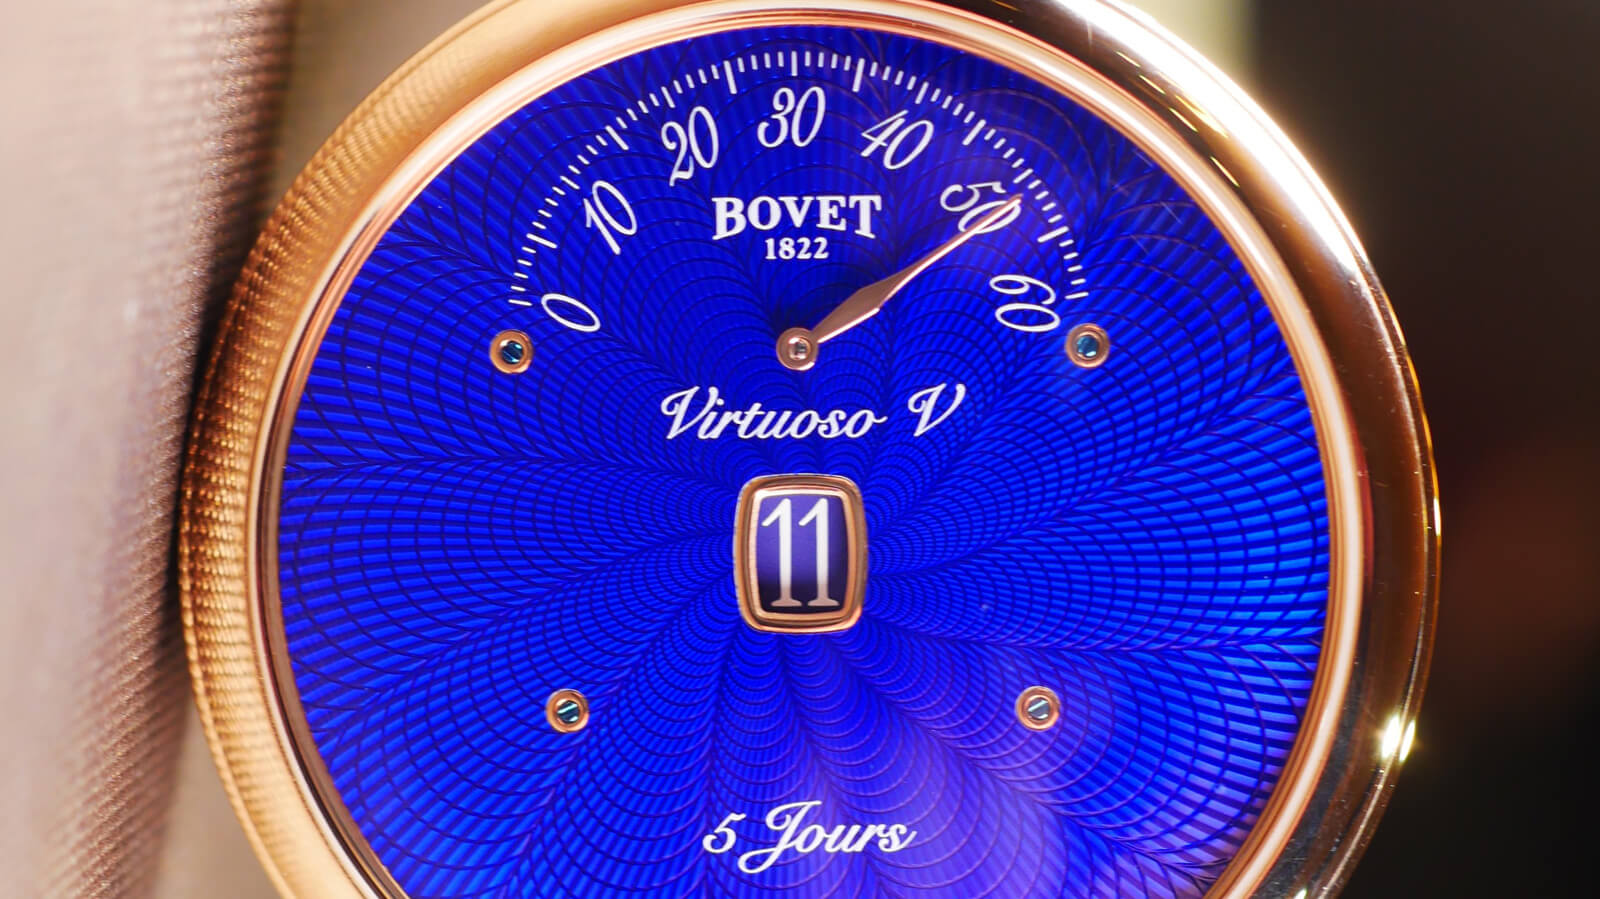 Bovet Amadeo Fleurier Virtuoso V - Jumping hours, retrograde minutes and reversed hand-fitting